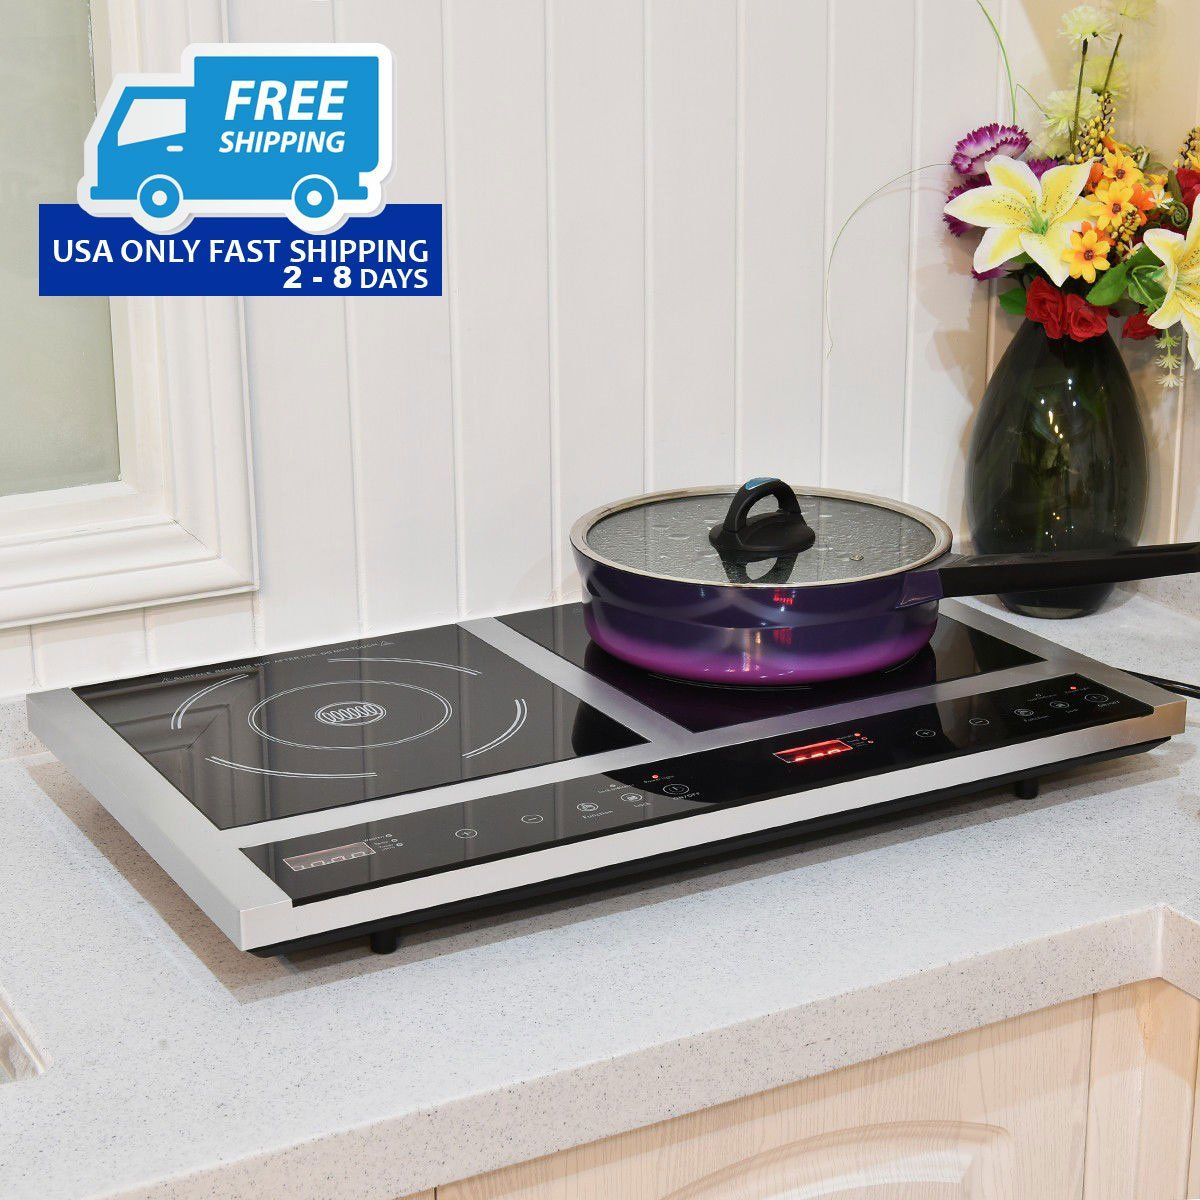 Double Burner Cooktop Digital Electric Induction Cooker